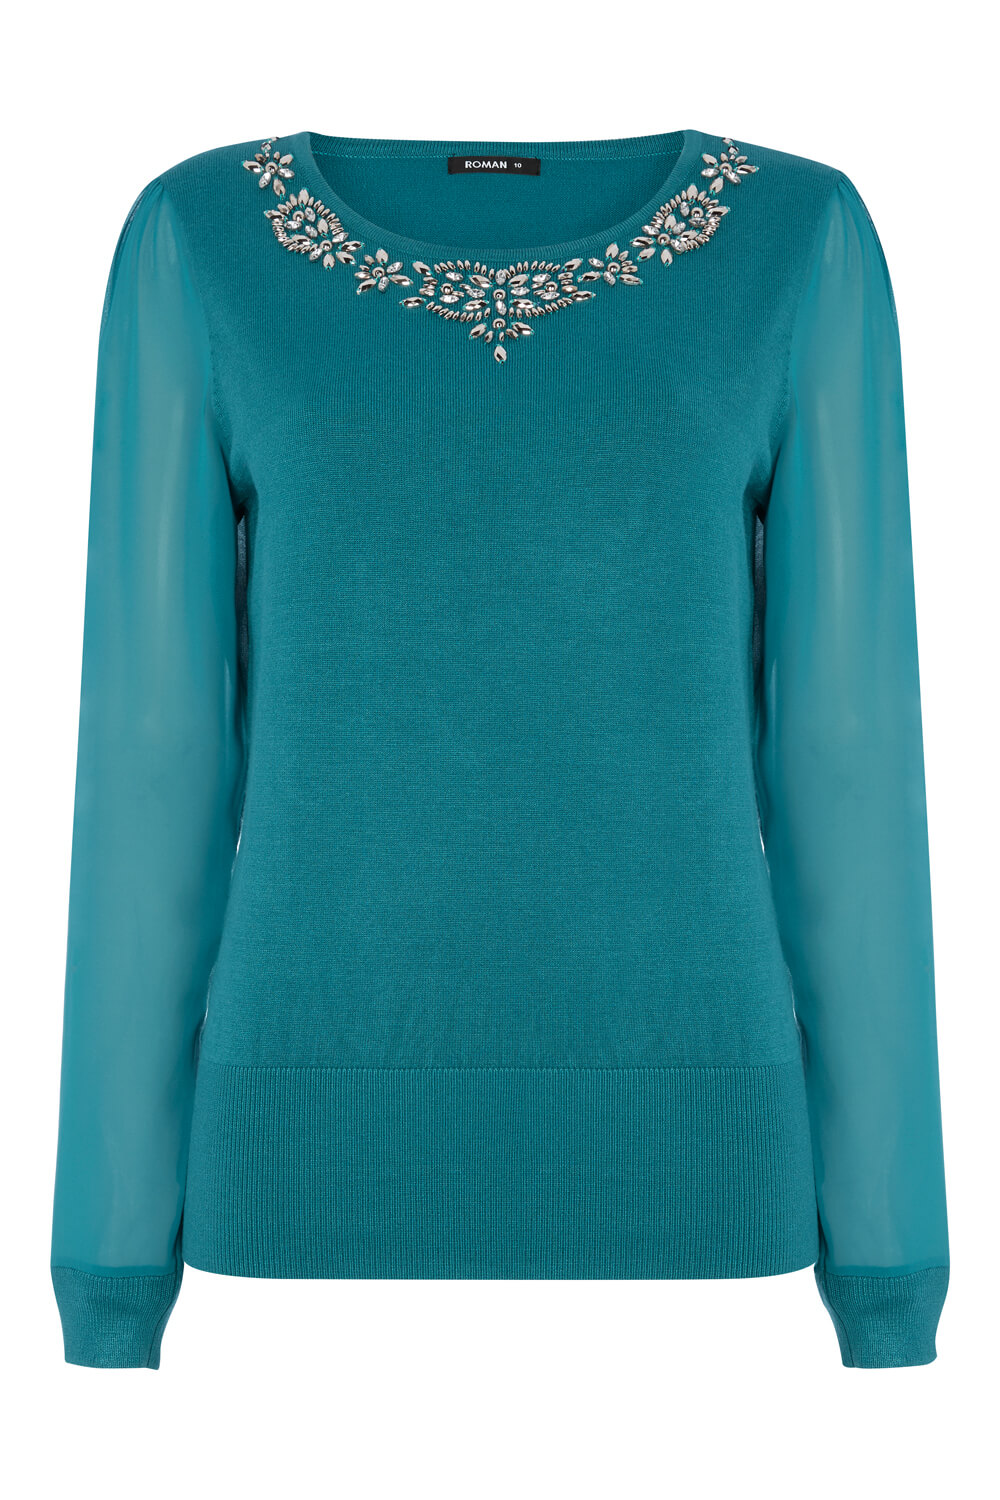 Roman Originals Ladies Embellished Chiffon Sleeve Jumper Teal